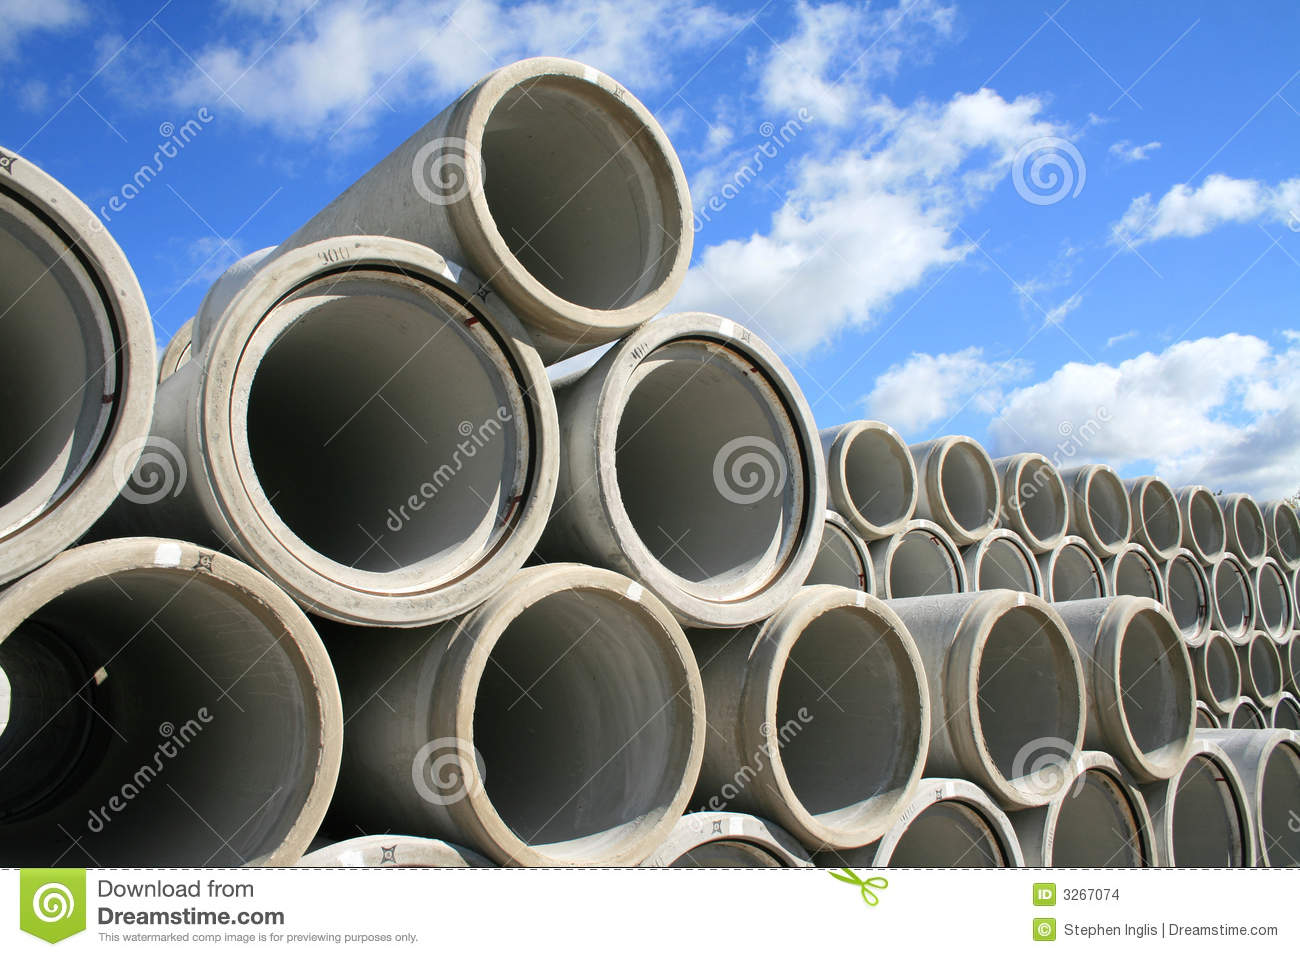 Stockpile Of Water Pipes Stock Photo Image Of Stacked